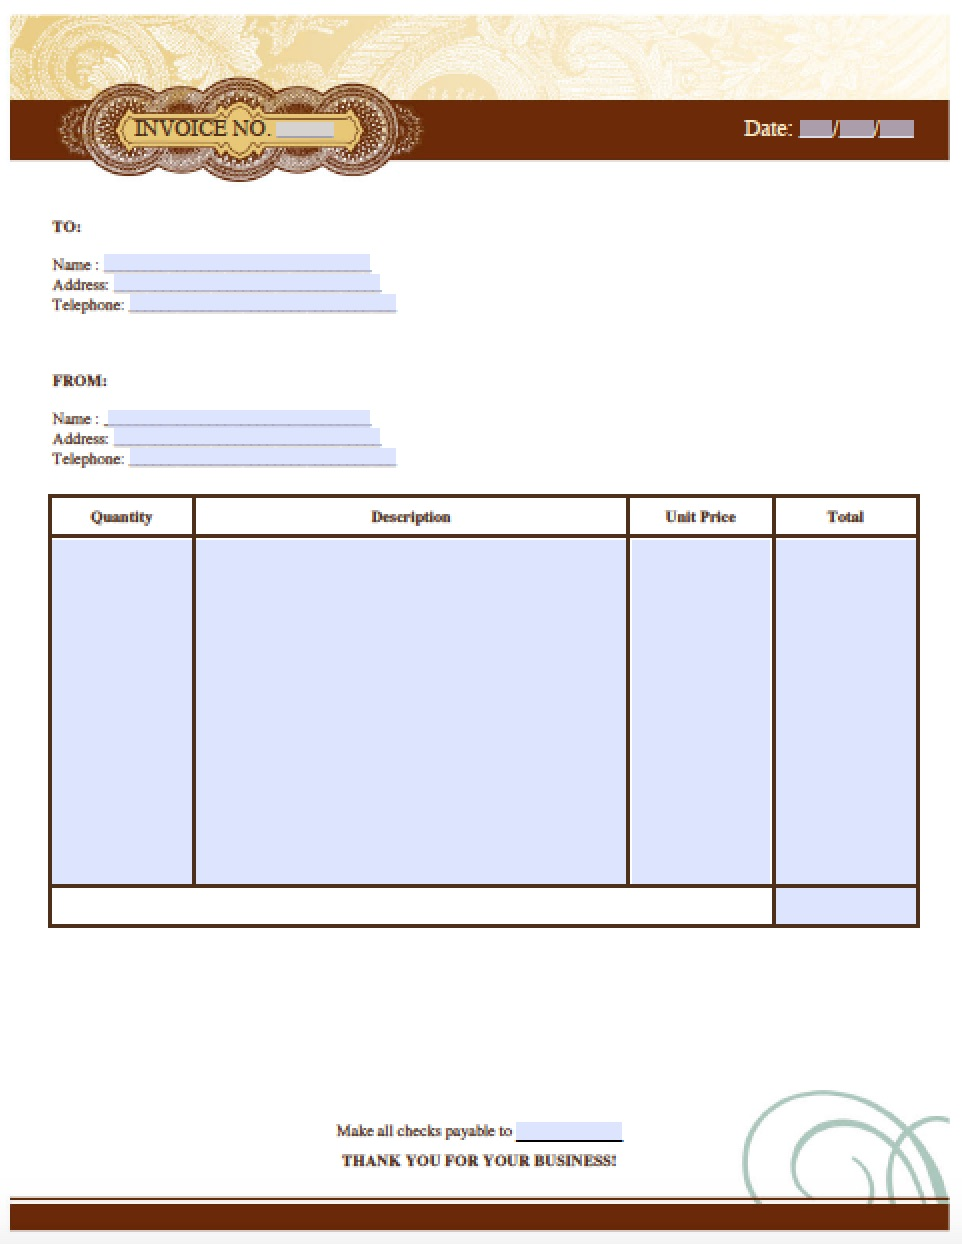 Free Artist Invoice Template Excel PDF Word Doc - What's a invoice online stores accept checks